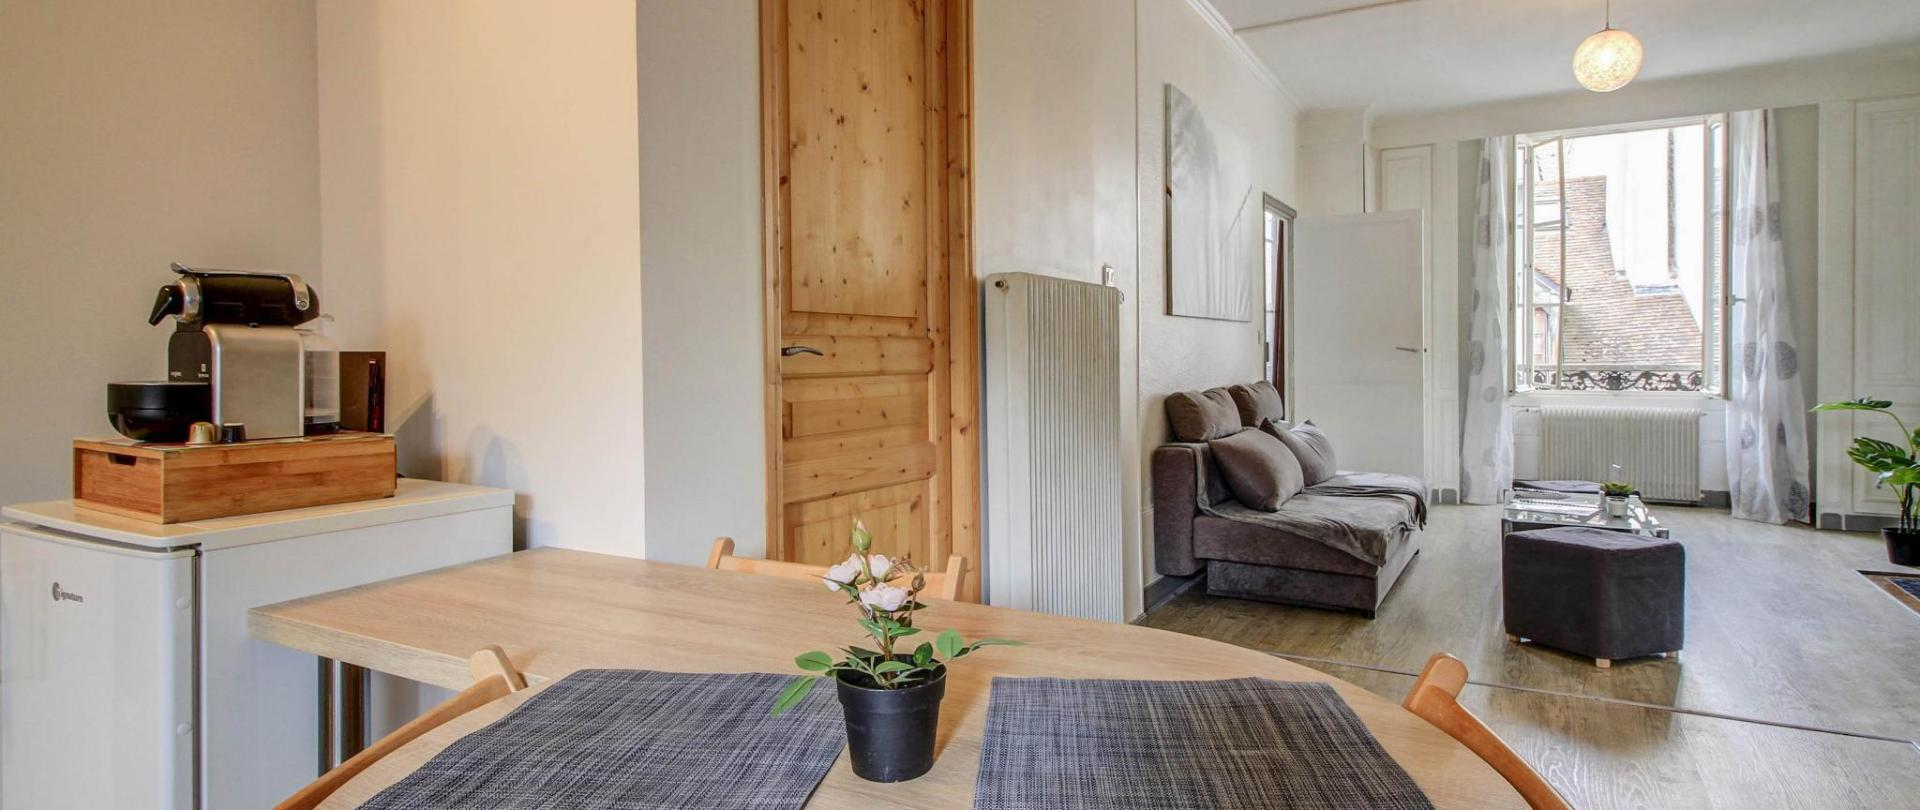 APPARTEMENT LE CHARLY - LE FORMEL